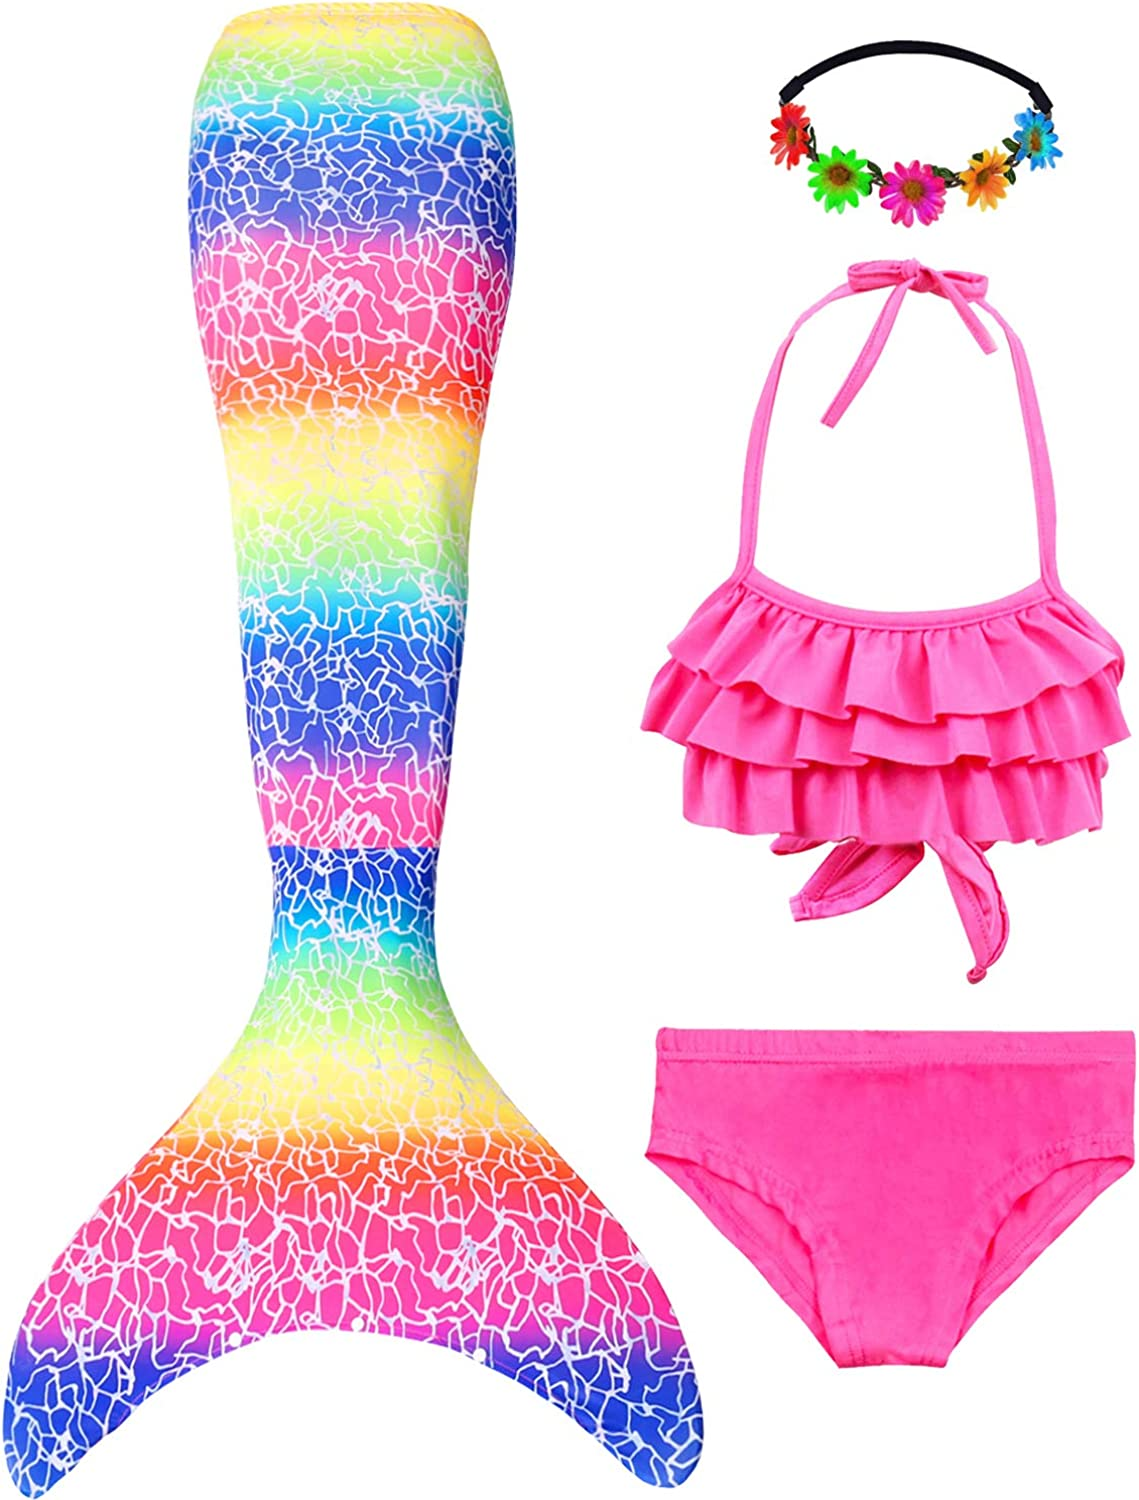 Mermaid Bathing Suit Set No with Monofin Mermaid Swimsuit for Girls Swimmable Costume Mermaid Tails for Swimming